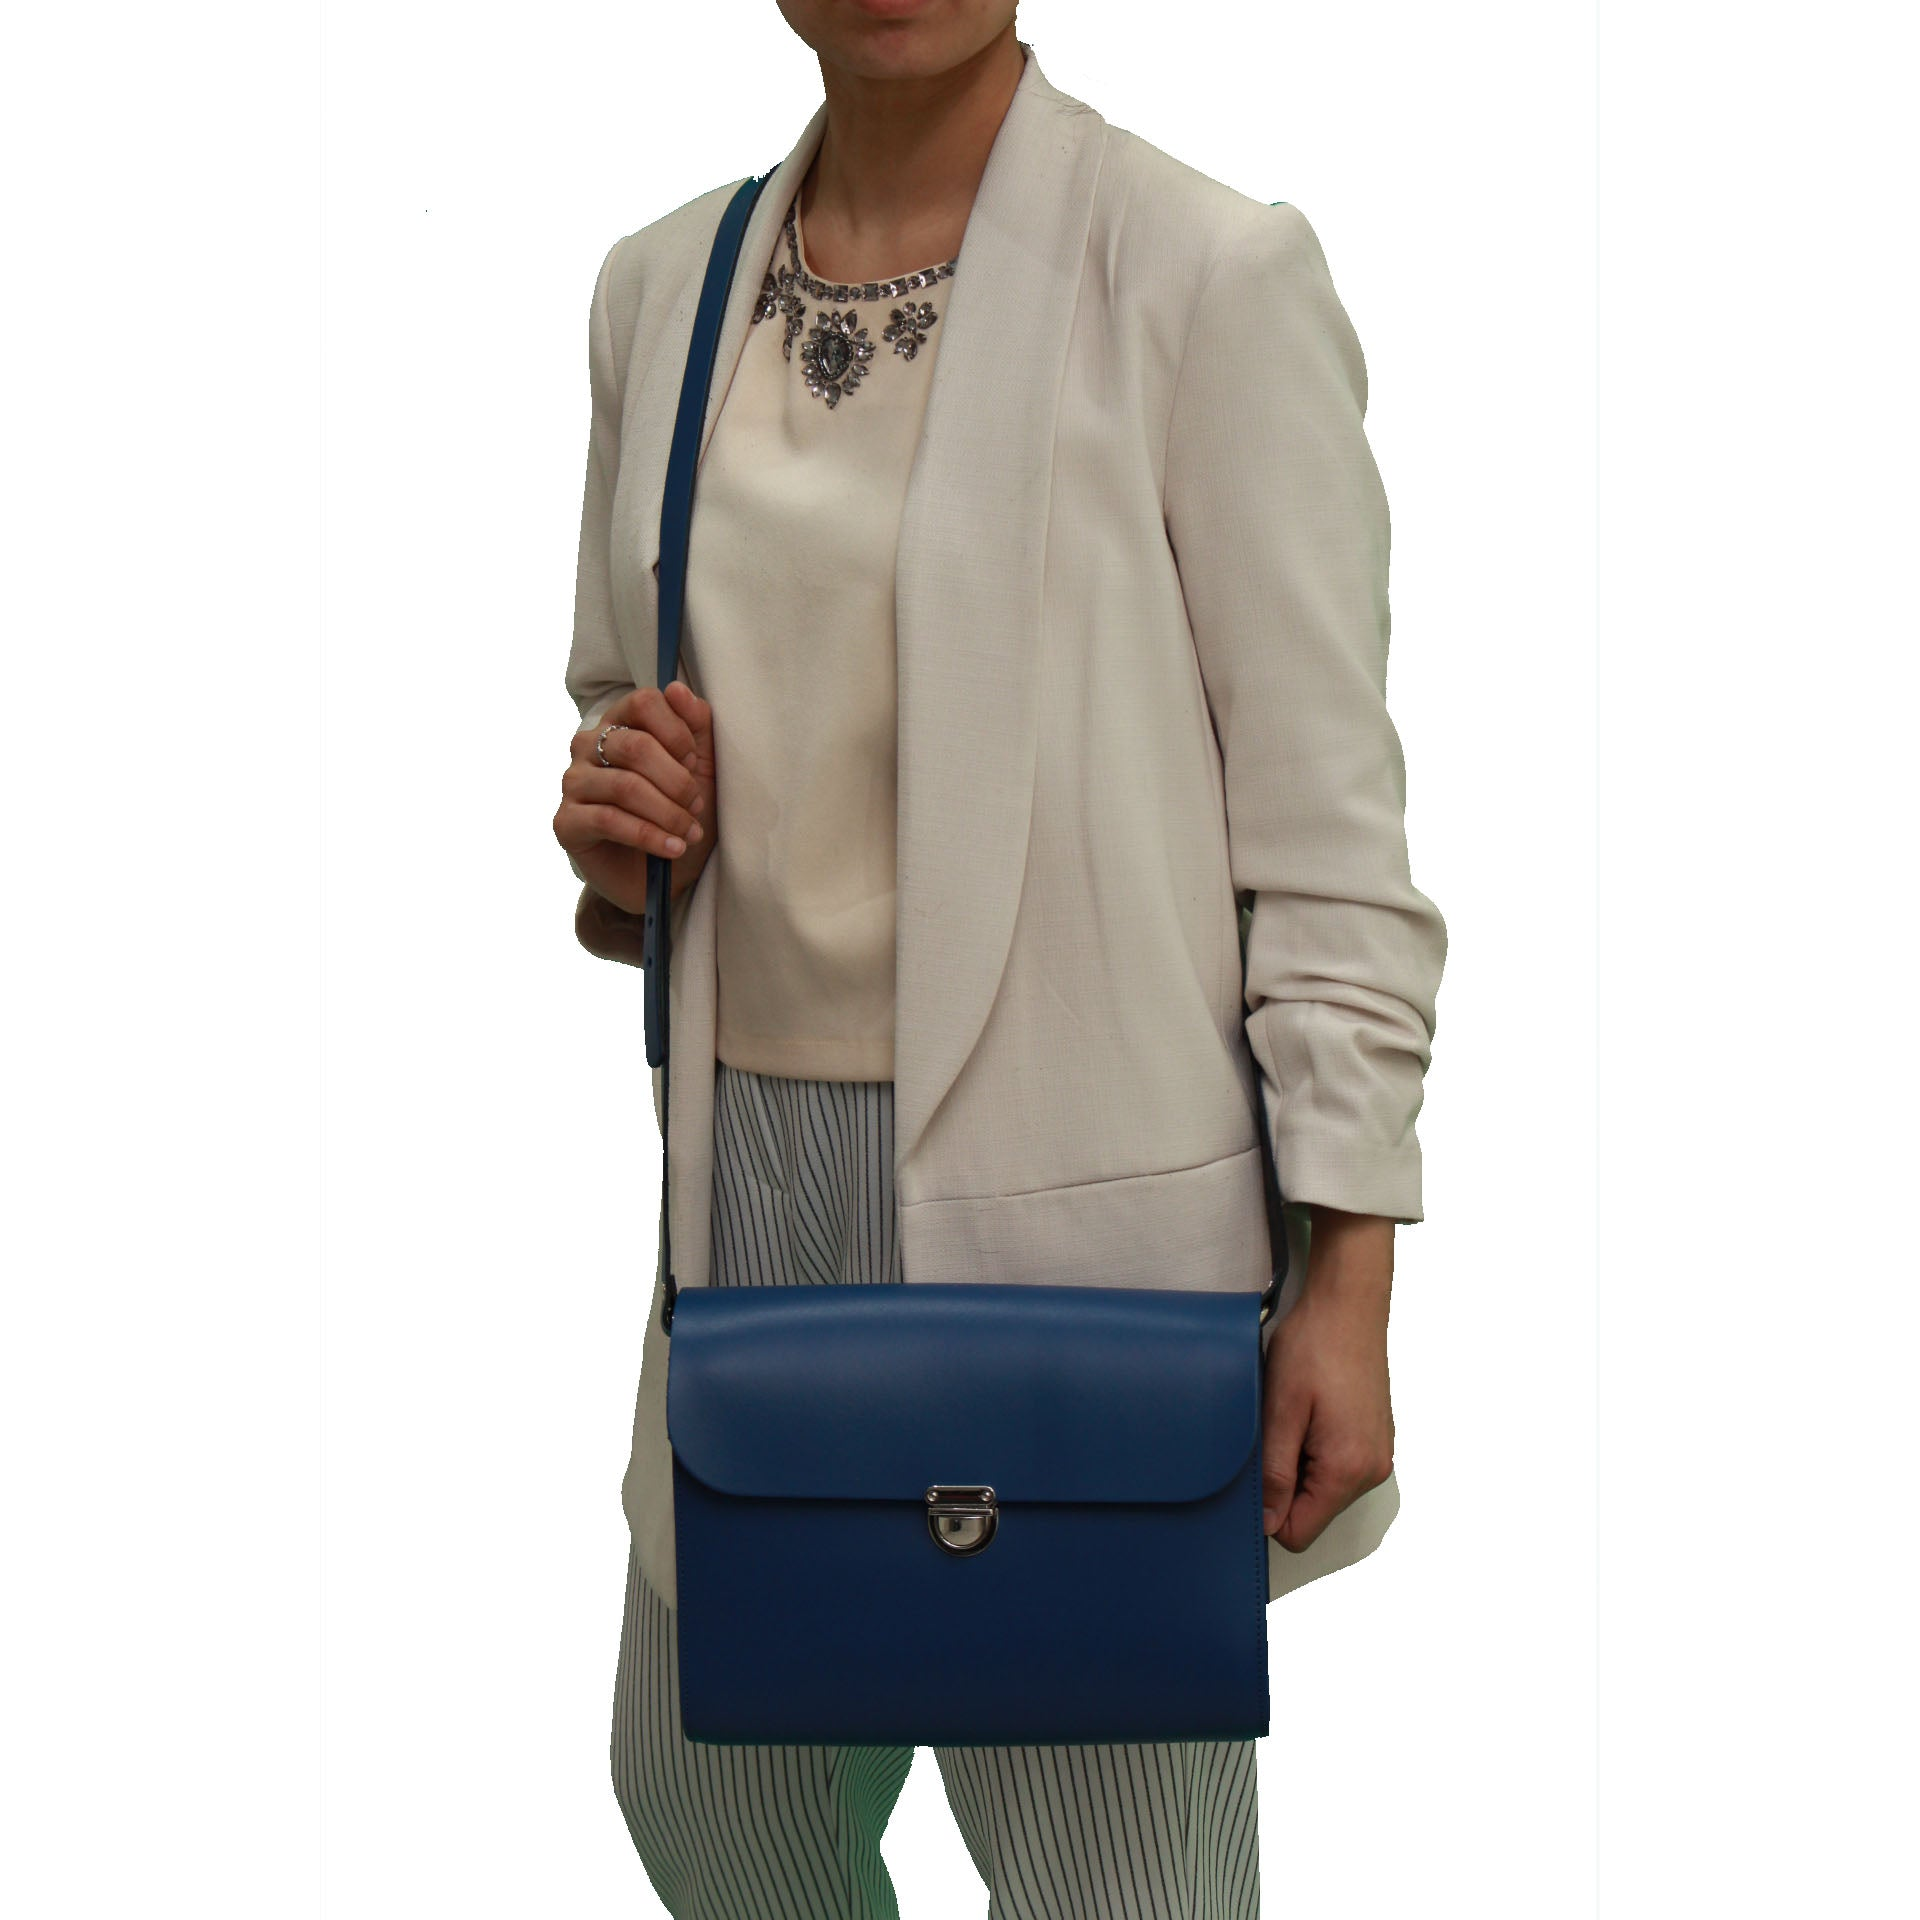 Blue Handmade Womens Large Leather Satchel Cross Body Classic Handbag. Can be personalised with initials.